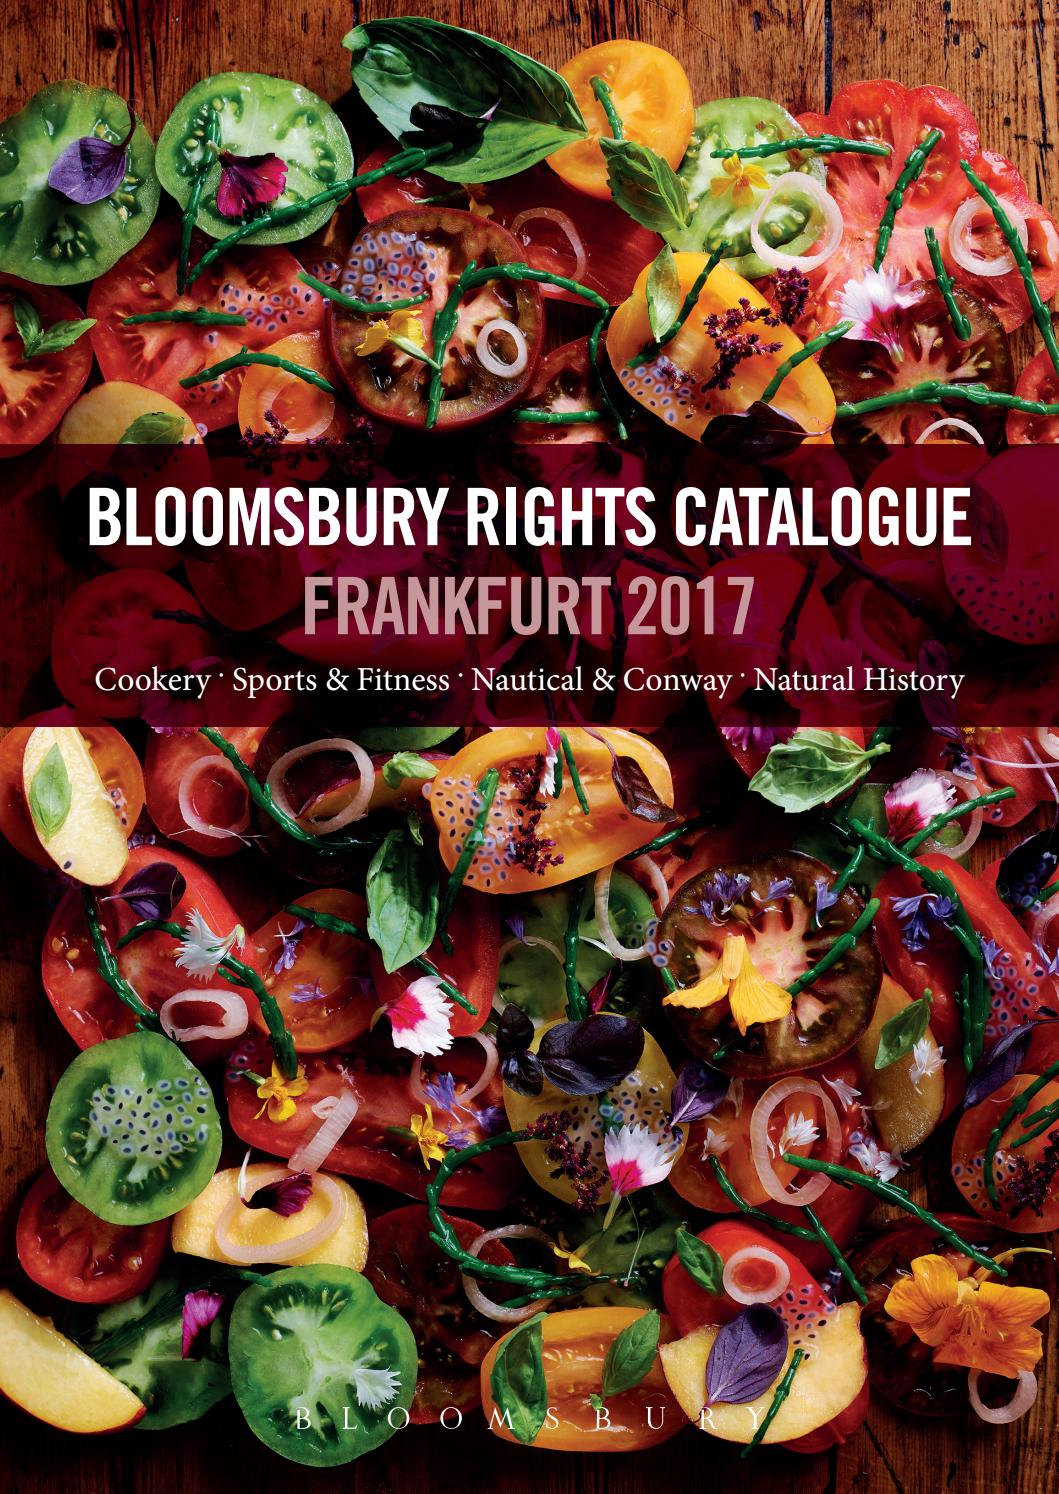 Bloomsbury Rights Catalogue Frankfurt 2017 By Publishing Lowan Whole Foods Rolled Oats 1kg Issuu